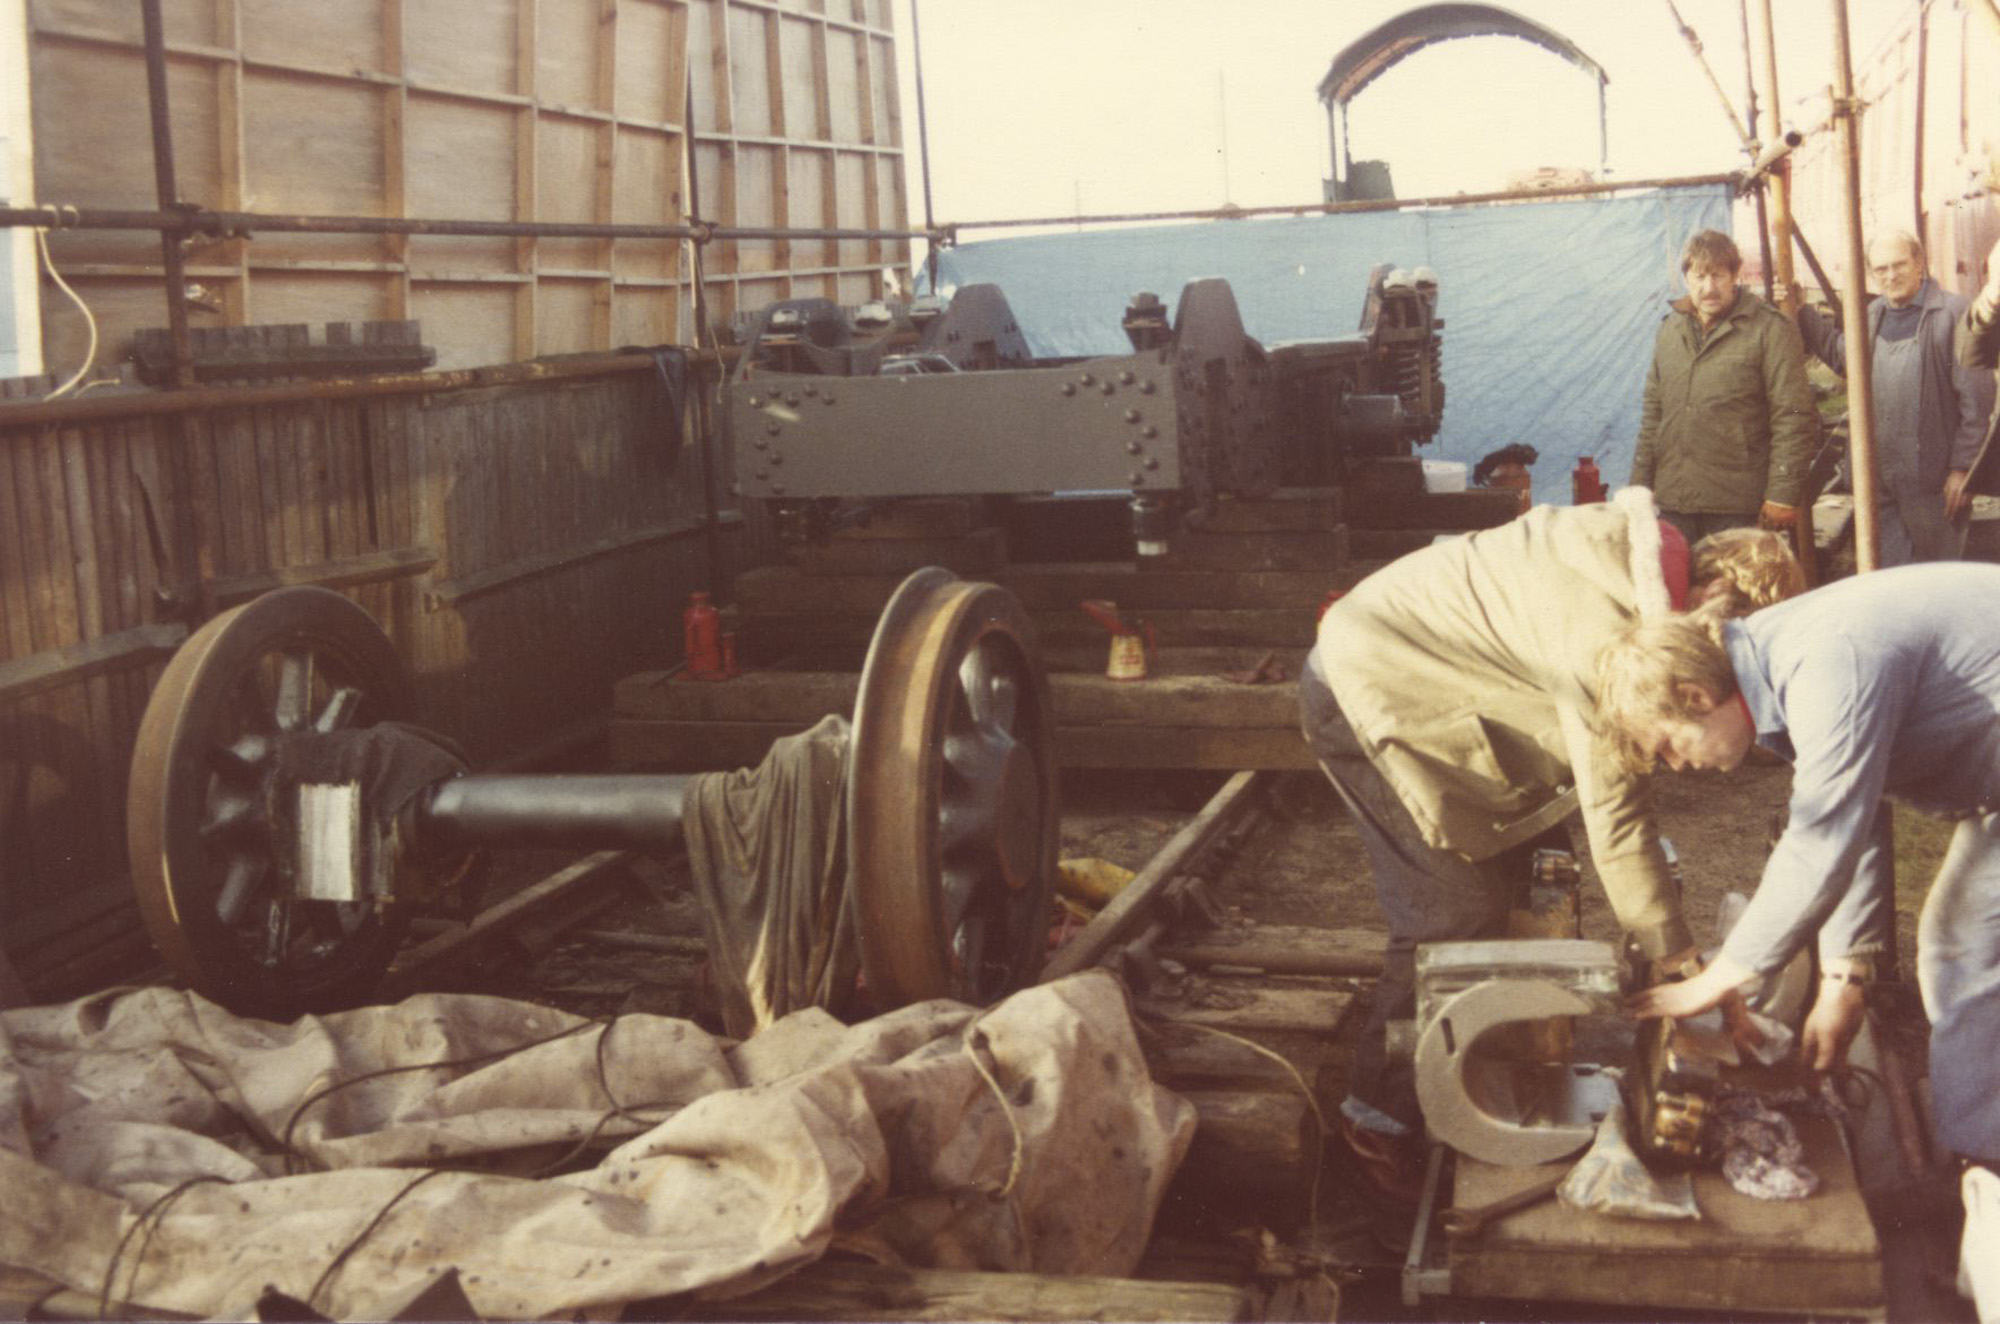 Working on the bogie, 1980s. © Chris Brown